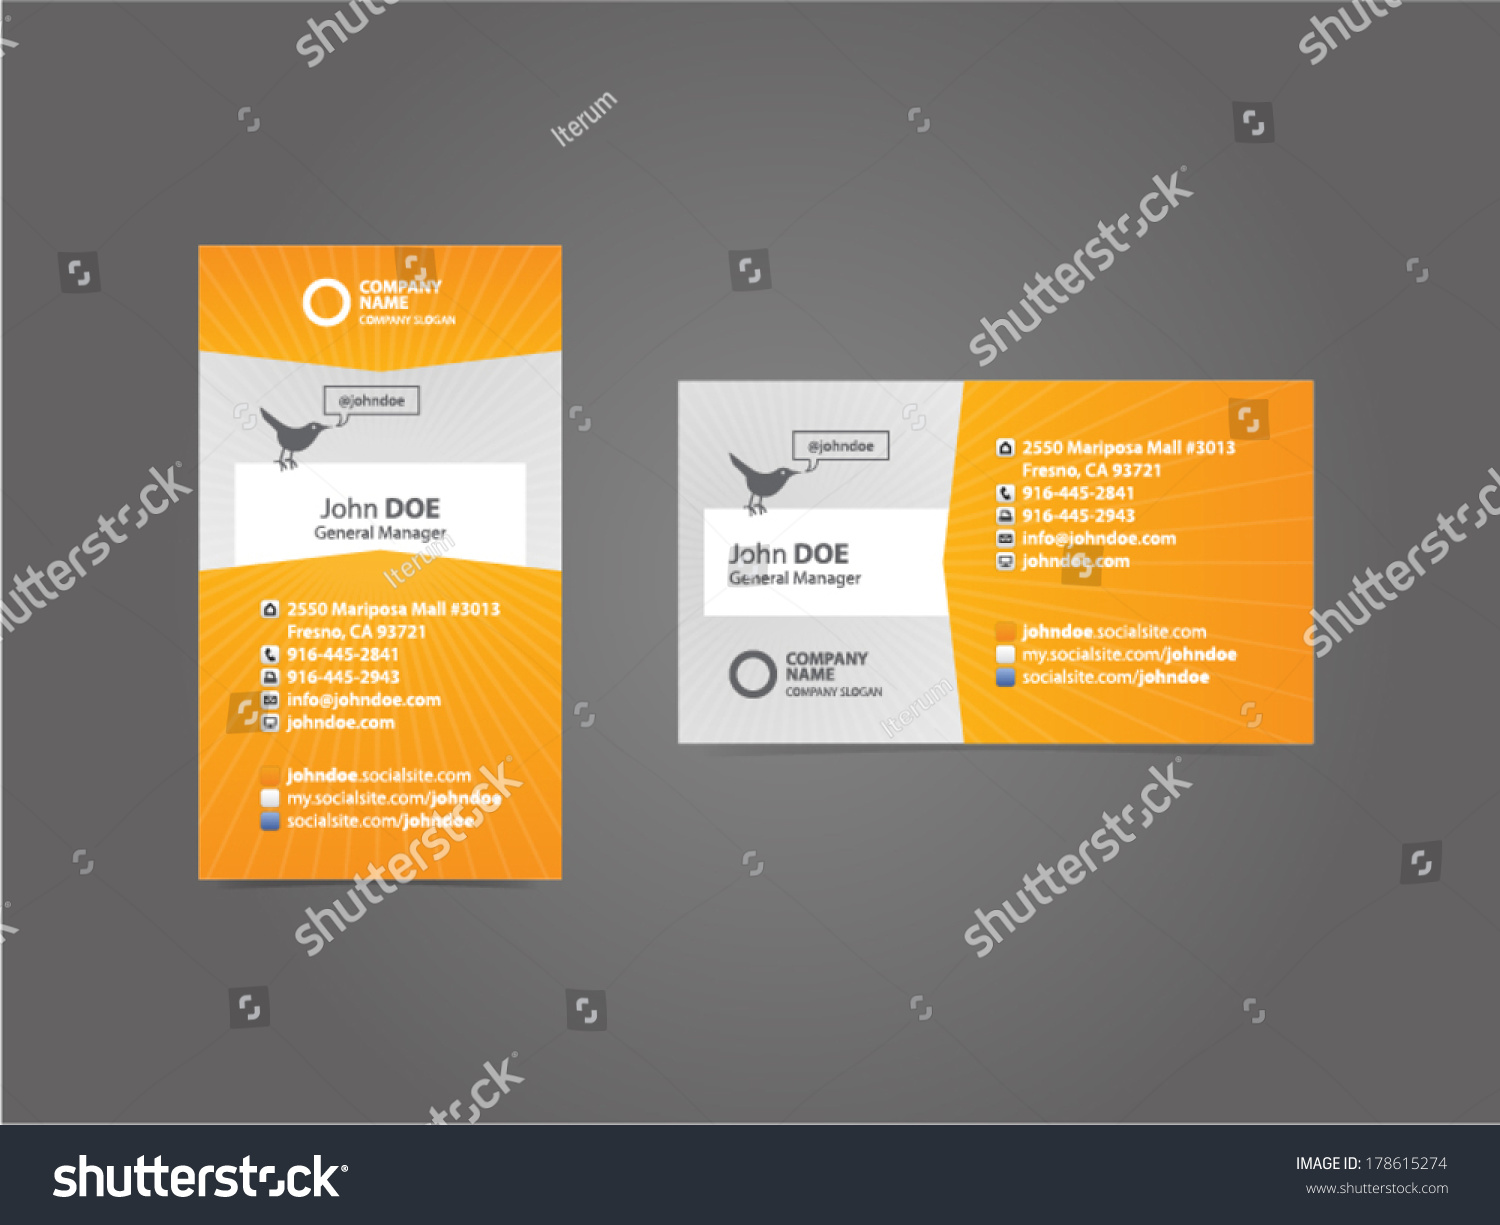 Business Card Printing Fresno Ca Choice Image - Card Design And ...